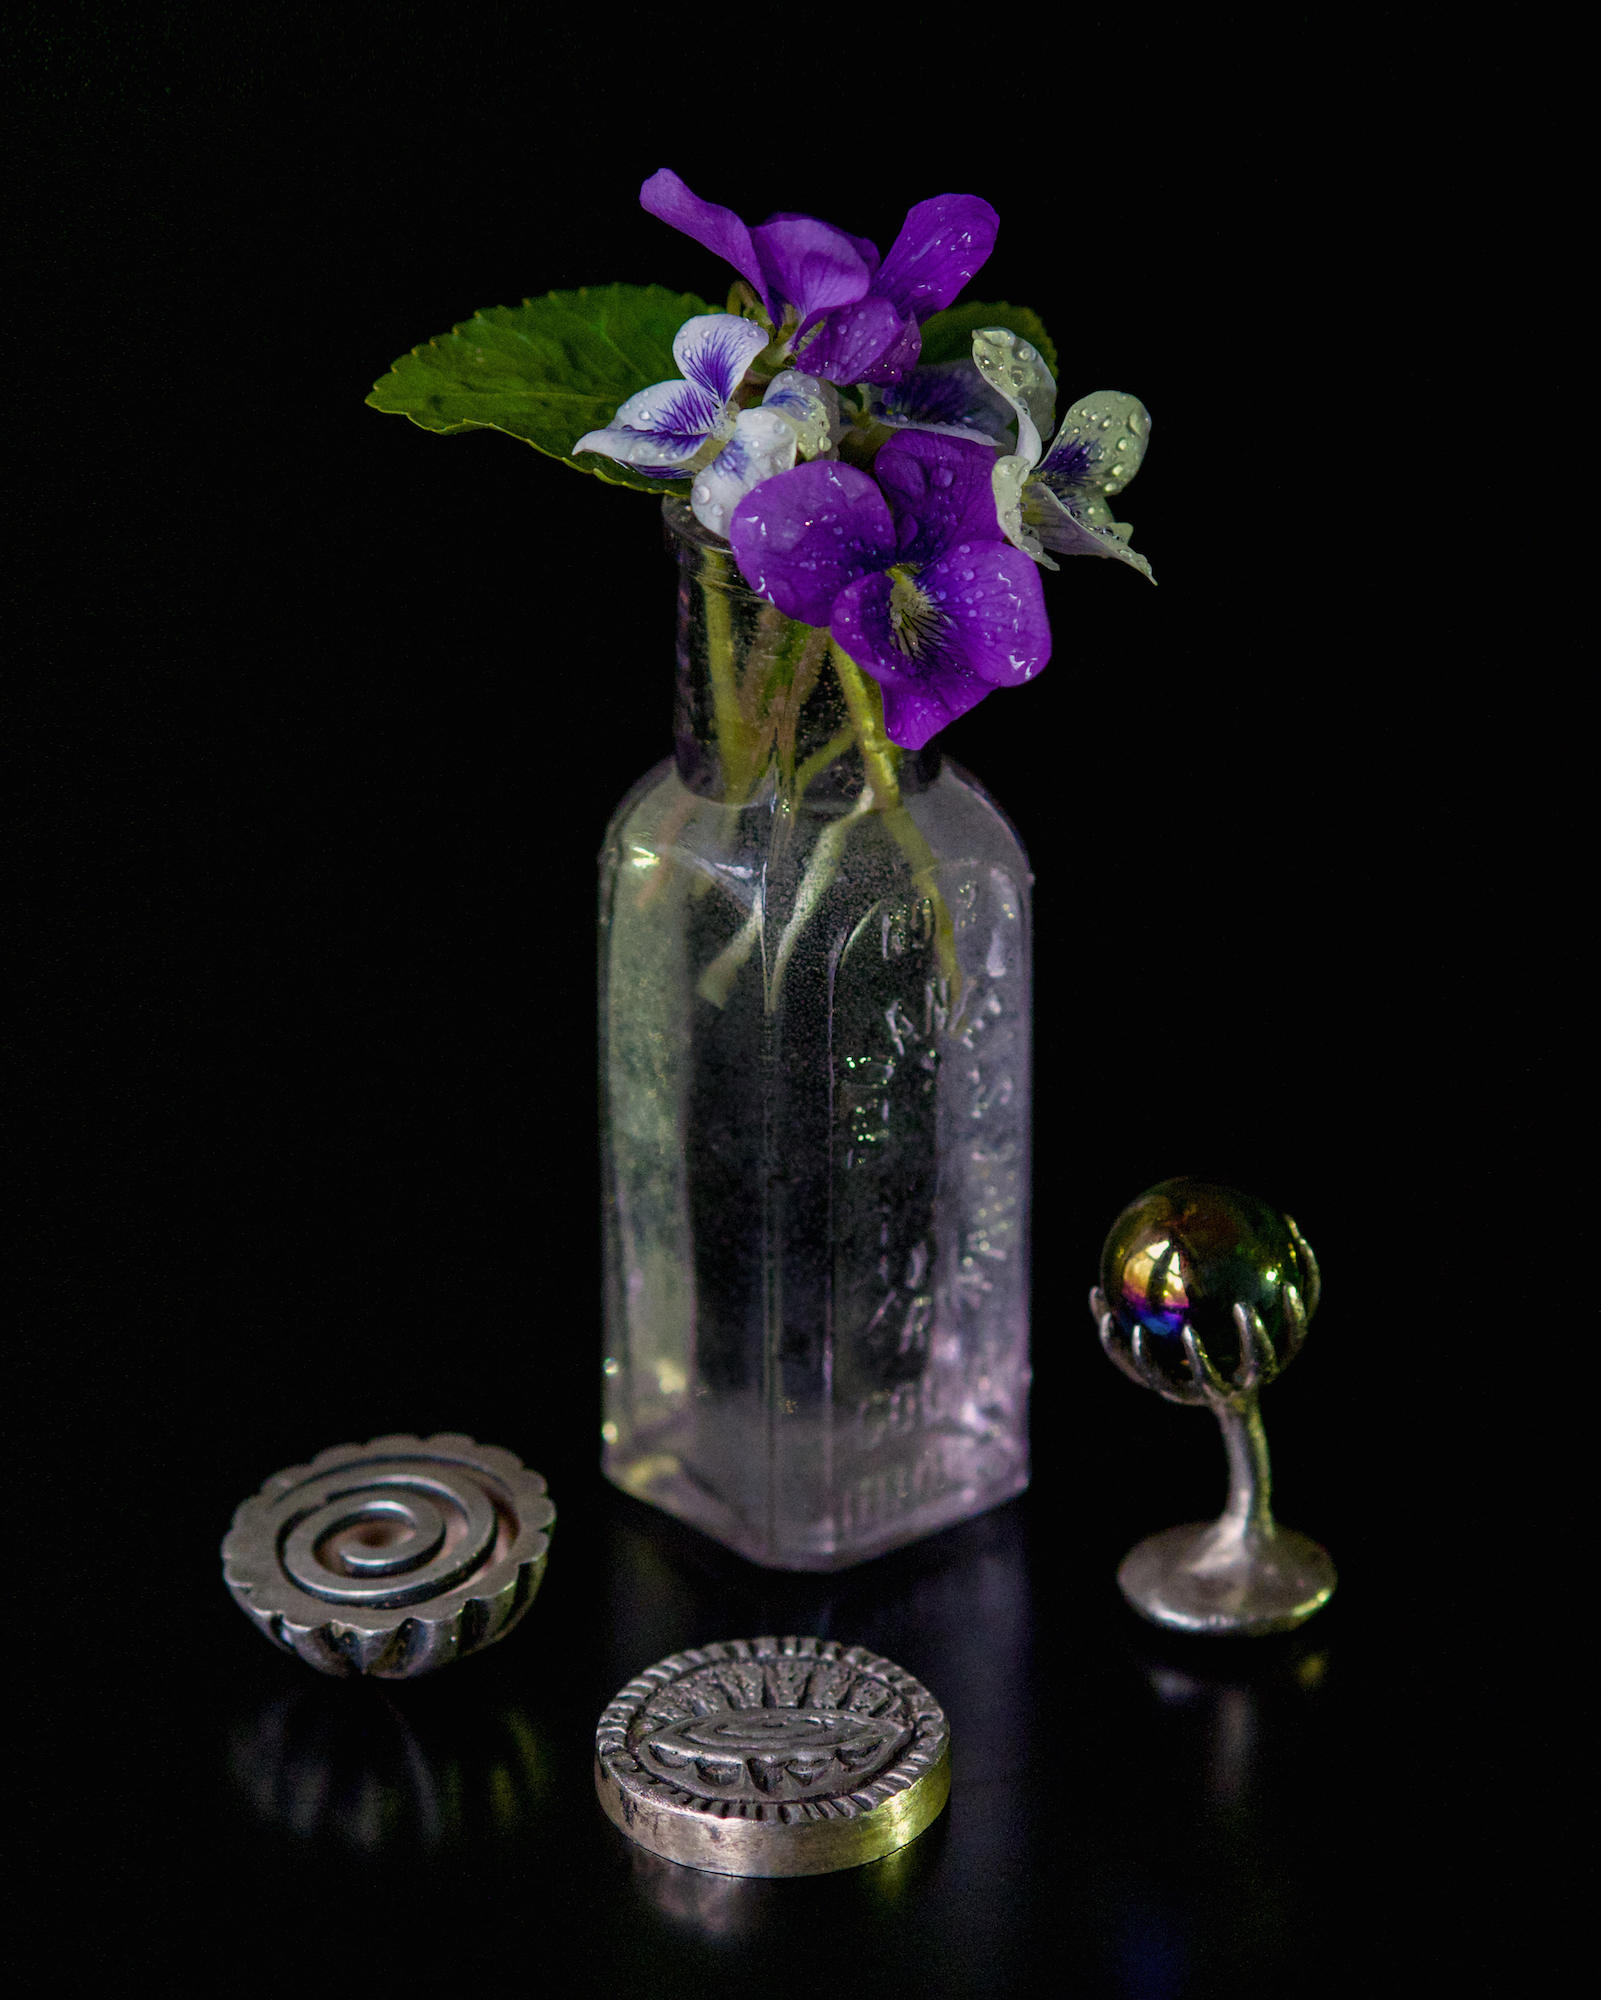 Still Life with Wild Violets and Silver Trinkets